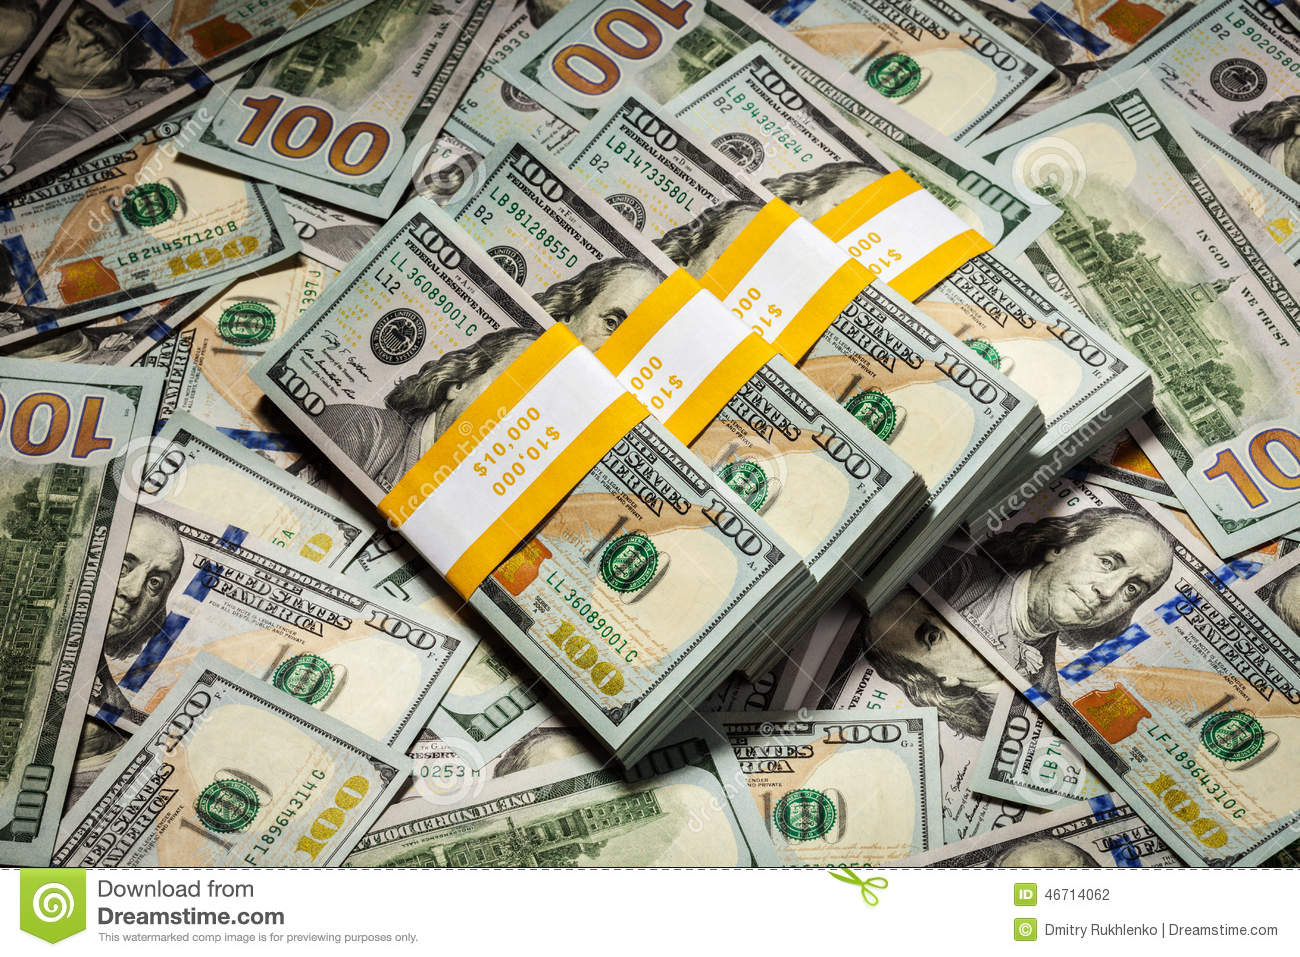 background of new 100 us dollars banknotes bills stock background of new 100 us dollars 2013 banknotes stock 997